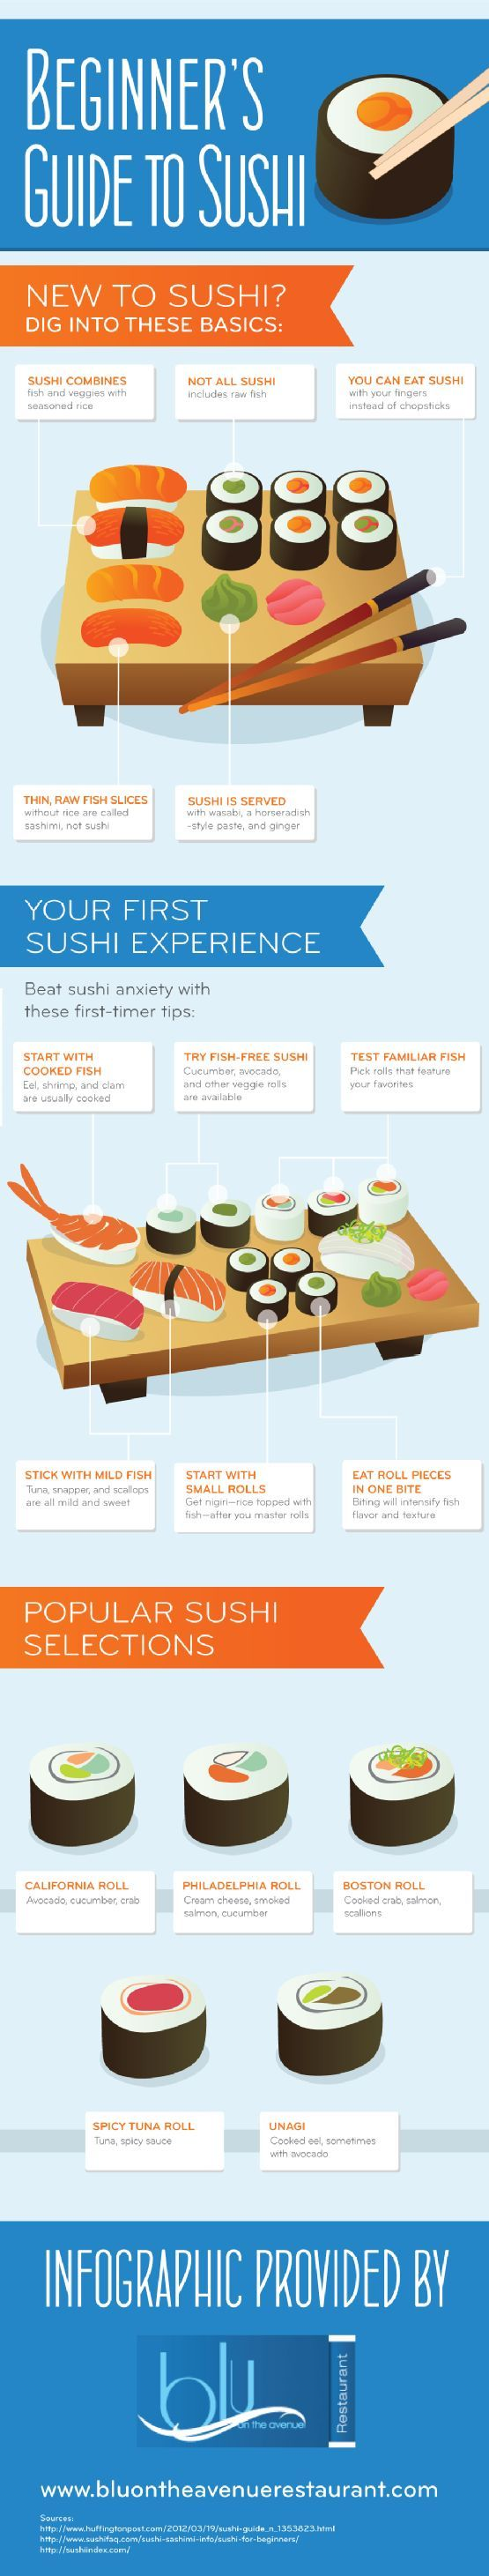 Infographic: A Beginner's Guide to Sushi via www.bittopper.com/post.php?id=513560355544844f560a788.63641640